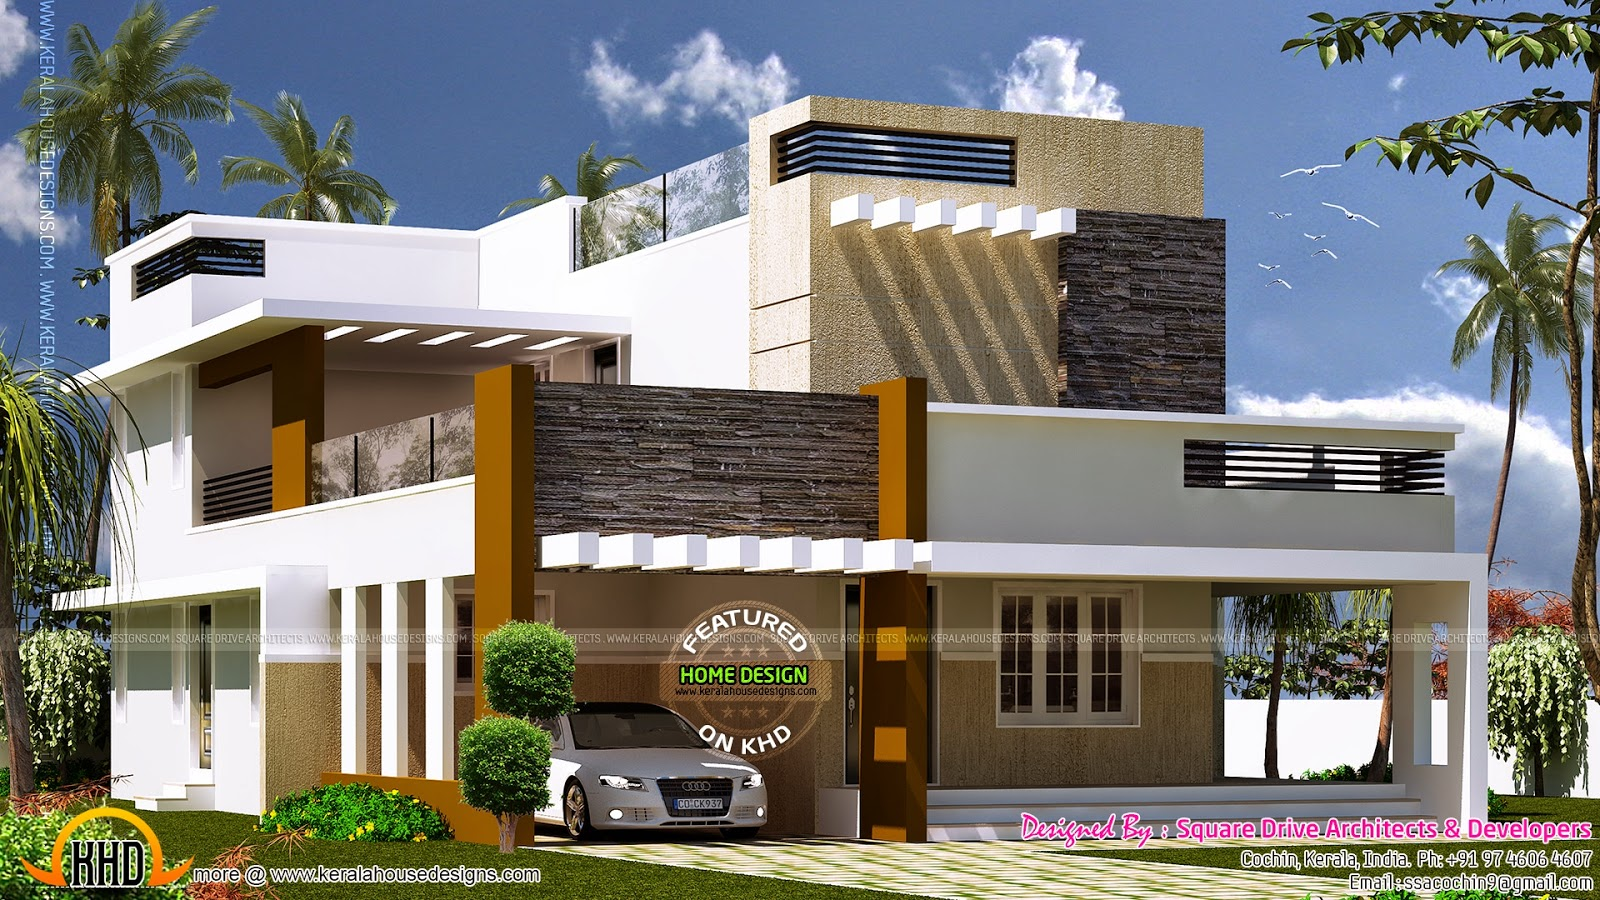 Exterior design of contemporary villa kerala home design for Gallery house exterior design photos